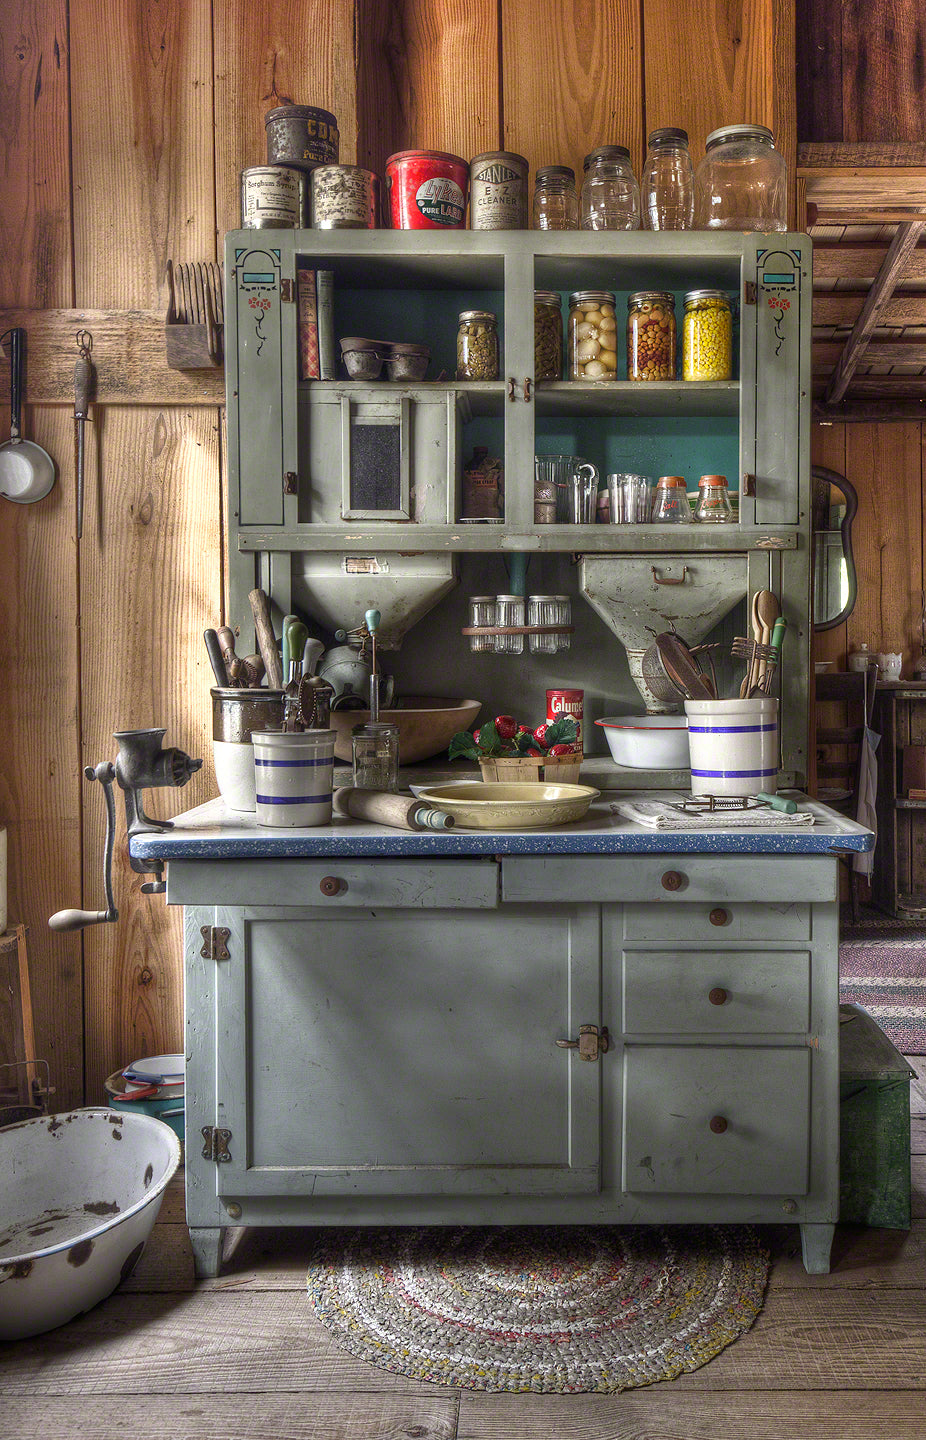 A photo of an old canning and baking hutch